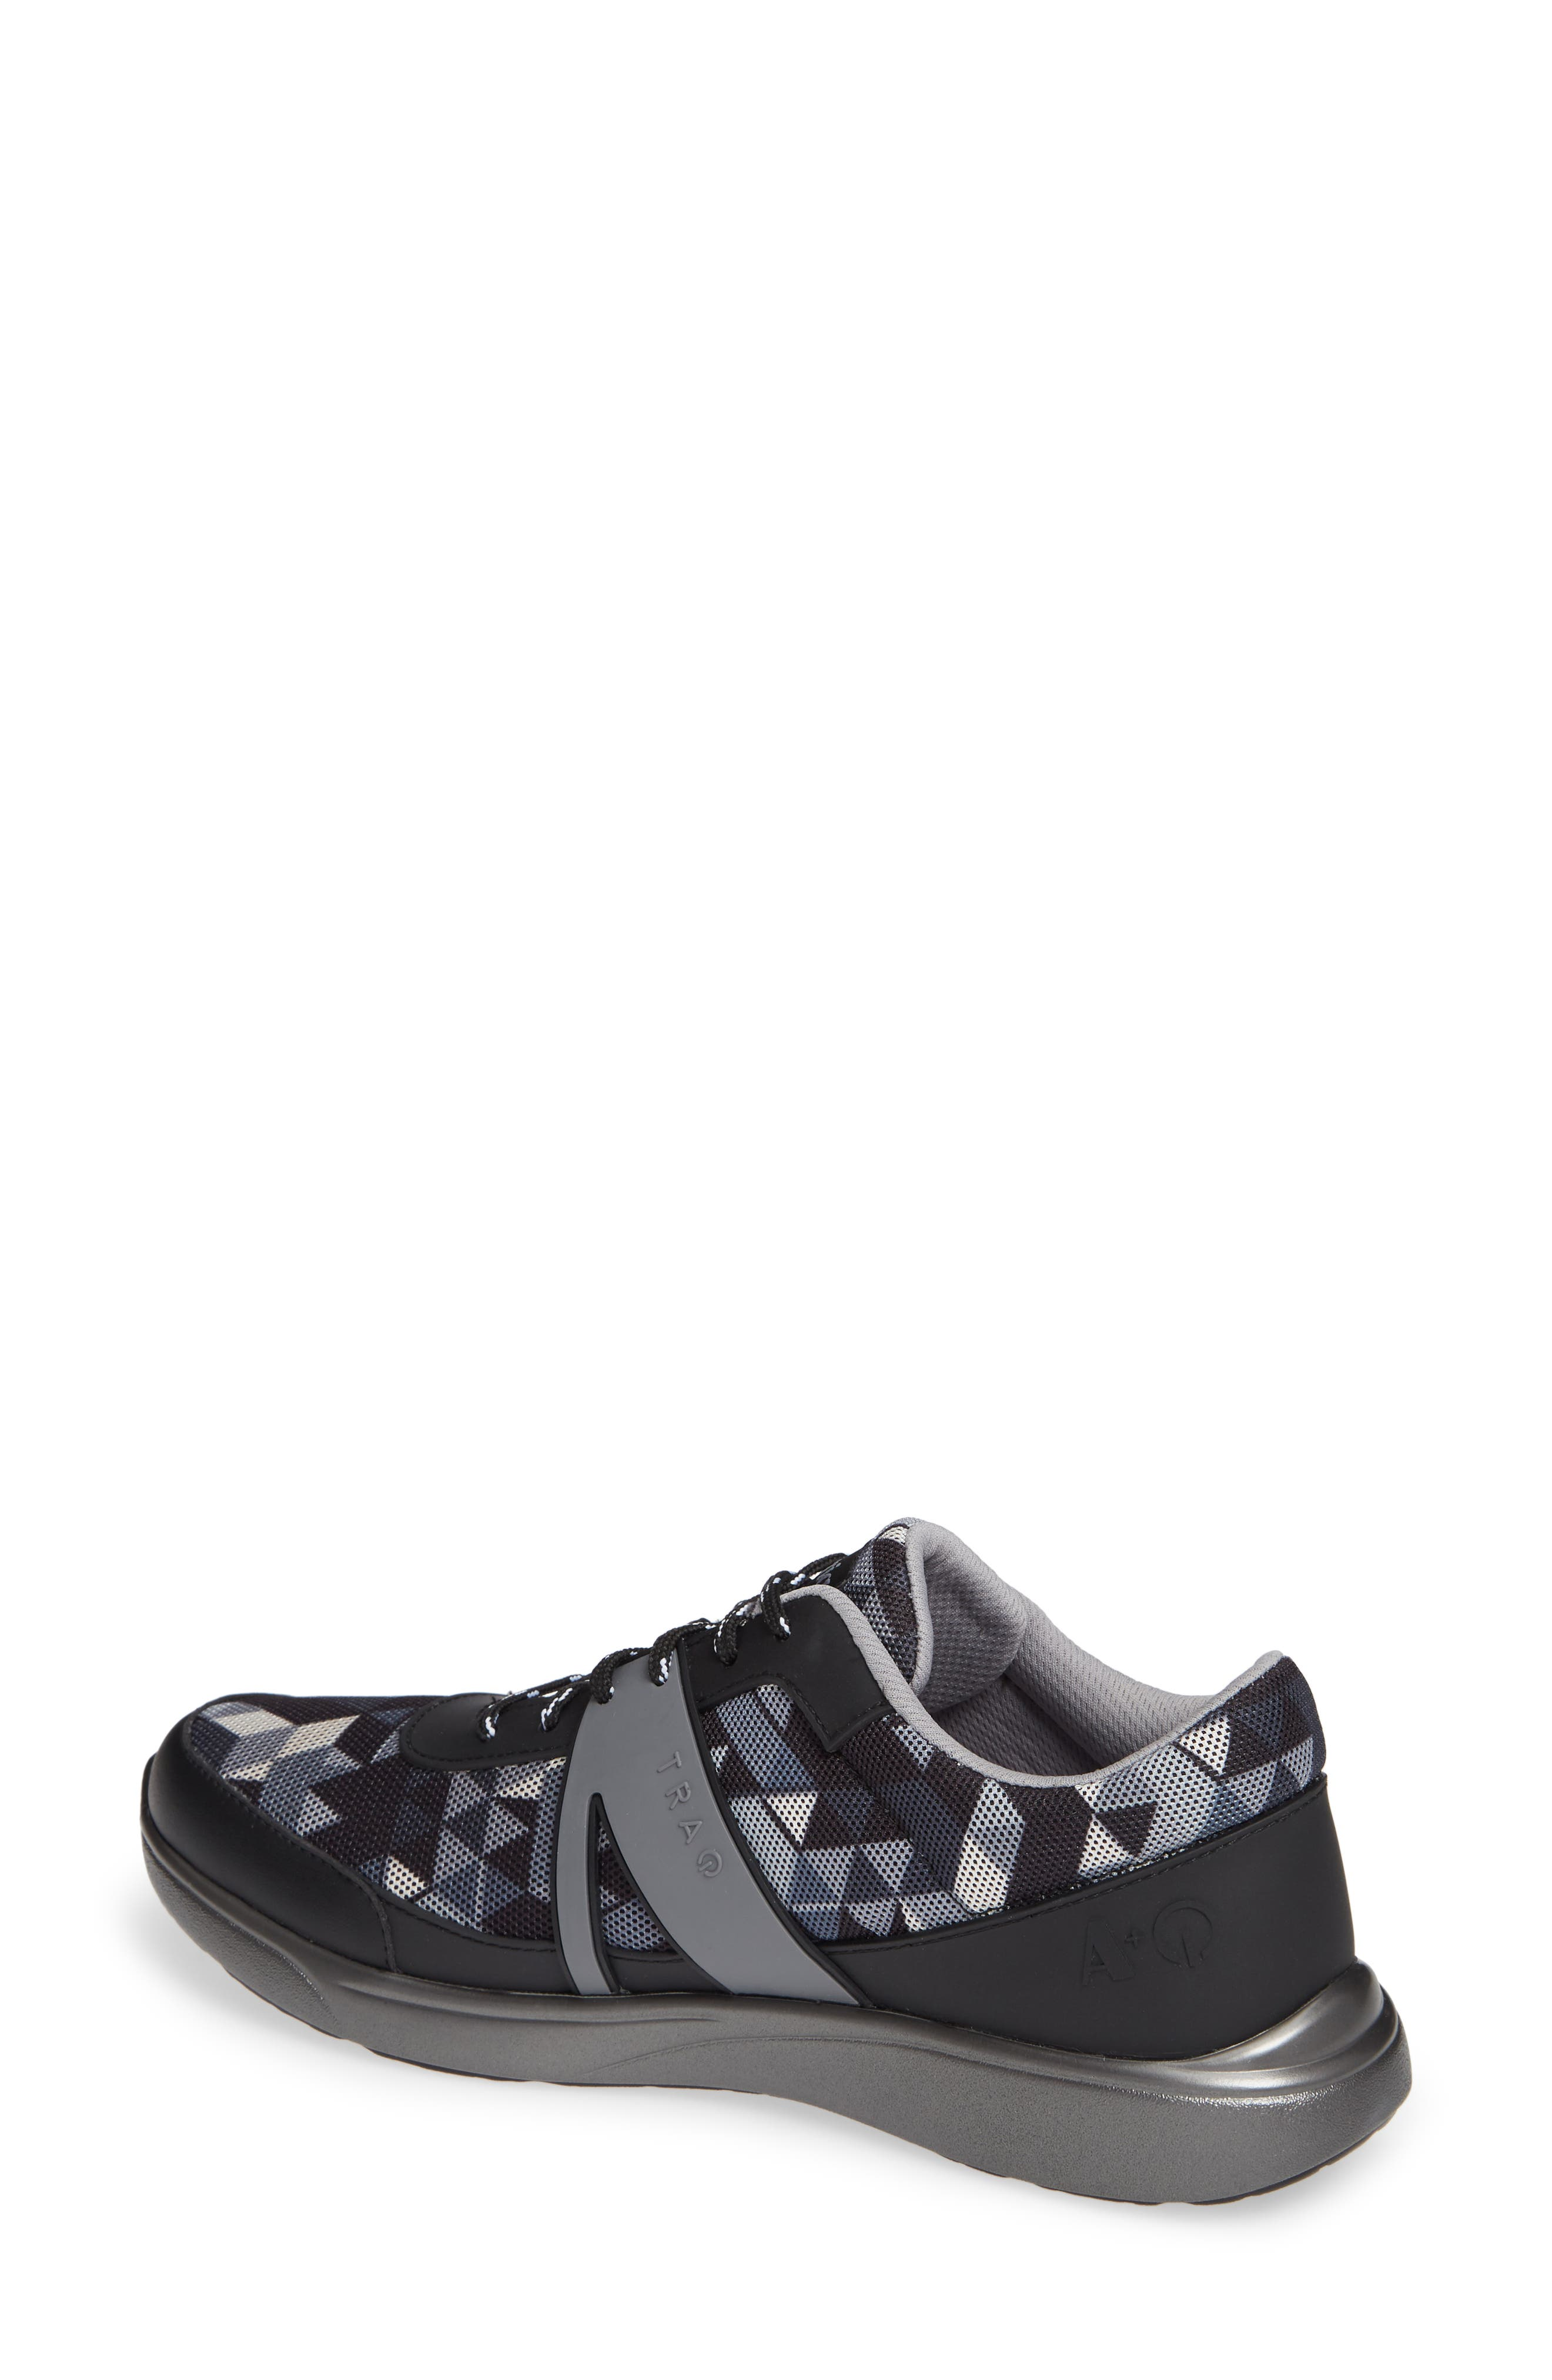 ALEGRIA, Qarma Sneaker, Alternate thumbnail 2, color, BLACK ANGLE LEATHER